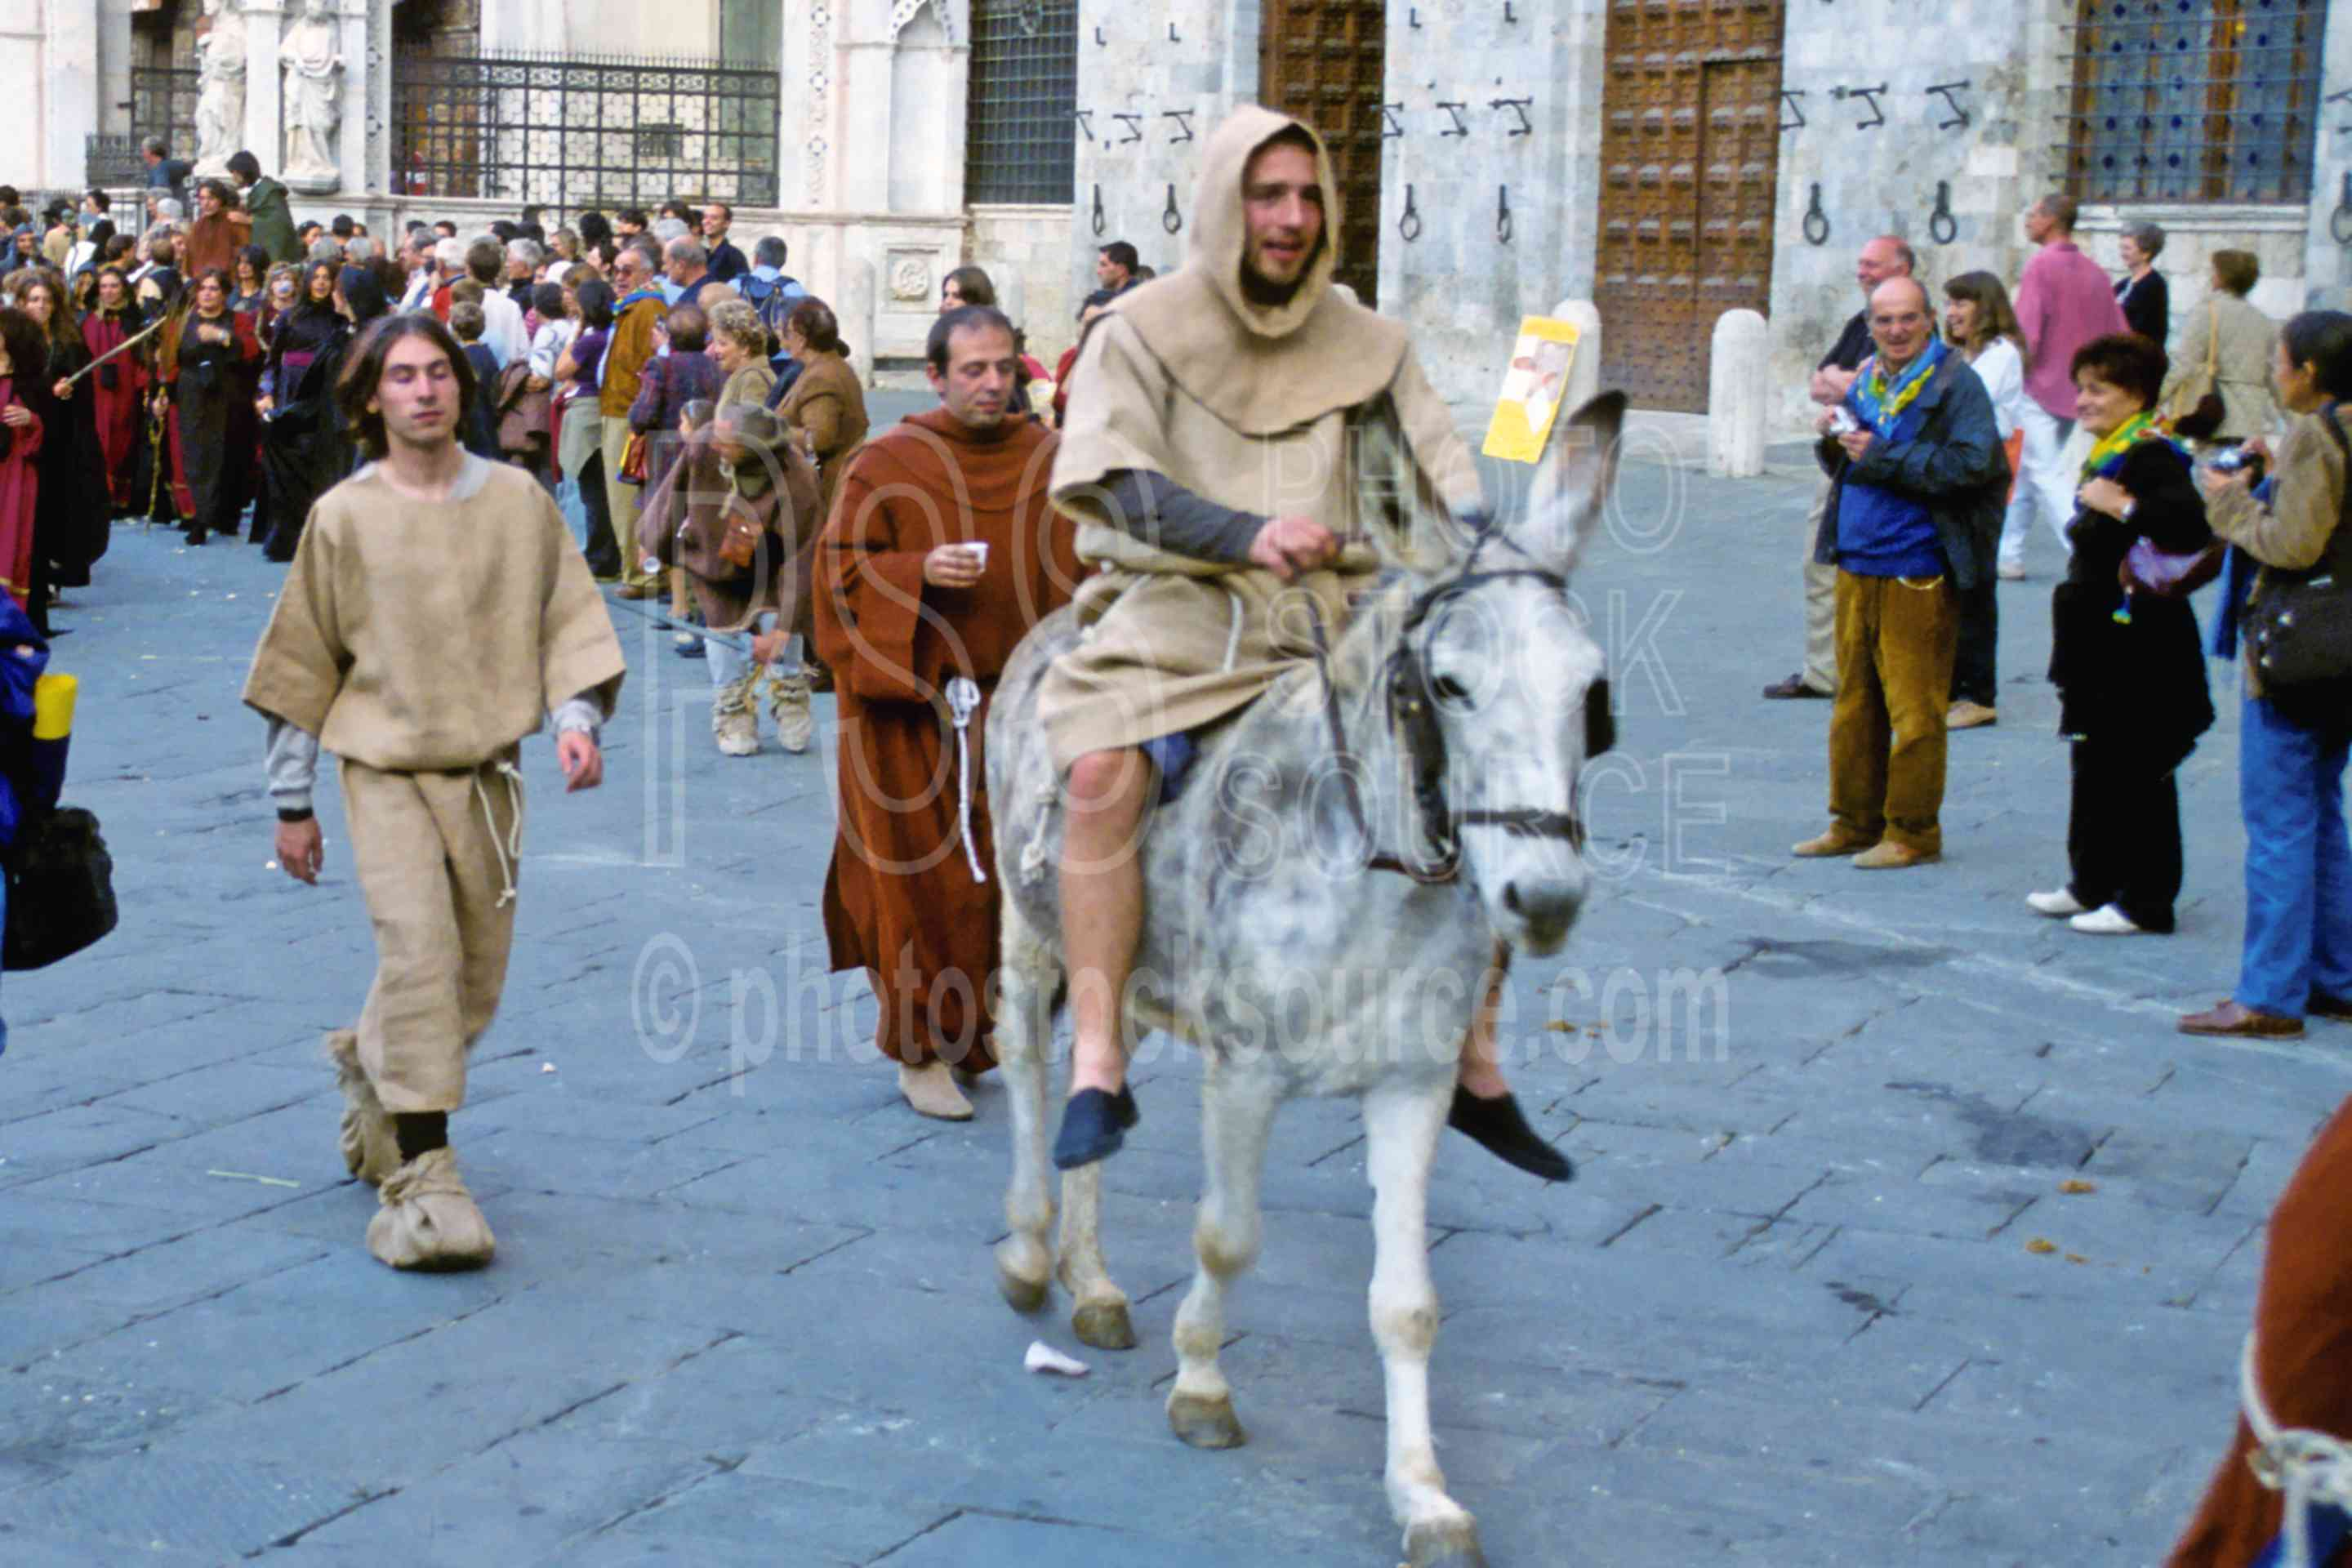 Parade in Il Campo,ceremony,donkey,europe,gather,il campo,palio,parade,farm animals,ceremonies